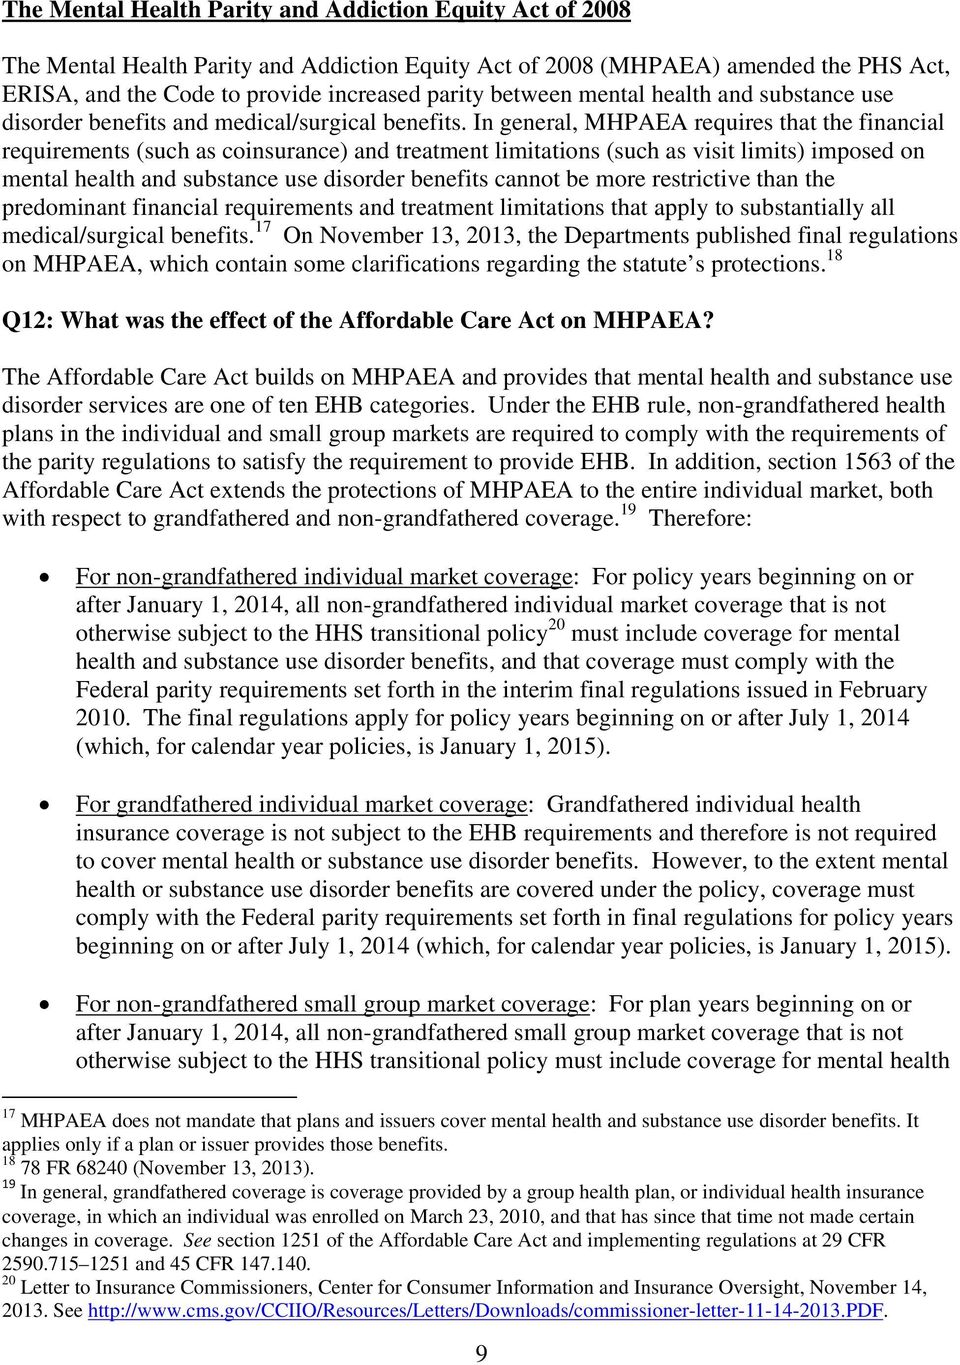 In general, MHPAEA requires that the financial requirements (such as coinsurance) and treatment limitations (such as visit limits) imposed on mental health and substance use disorder benefits cannot